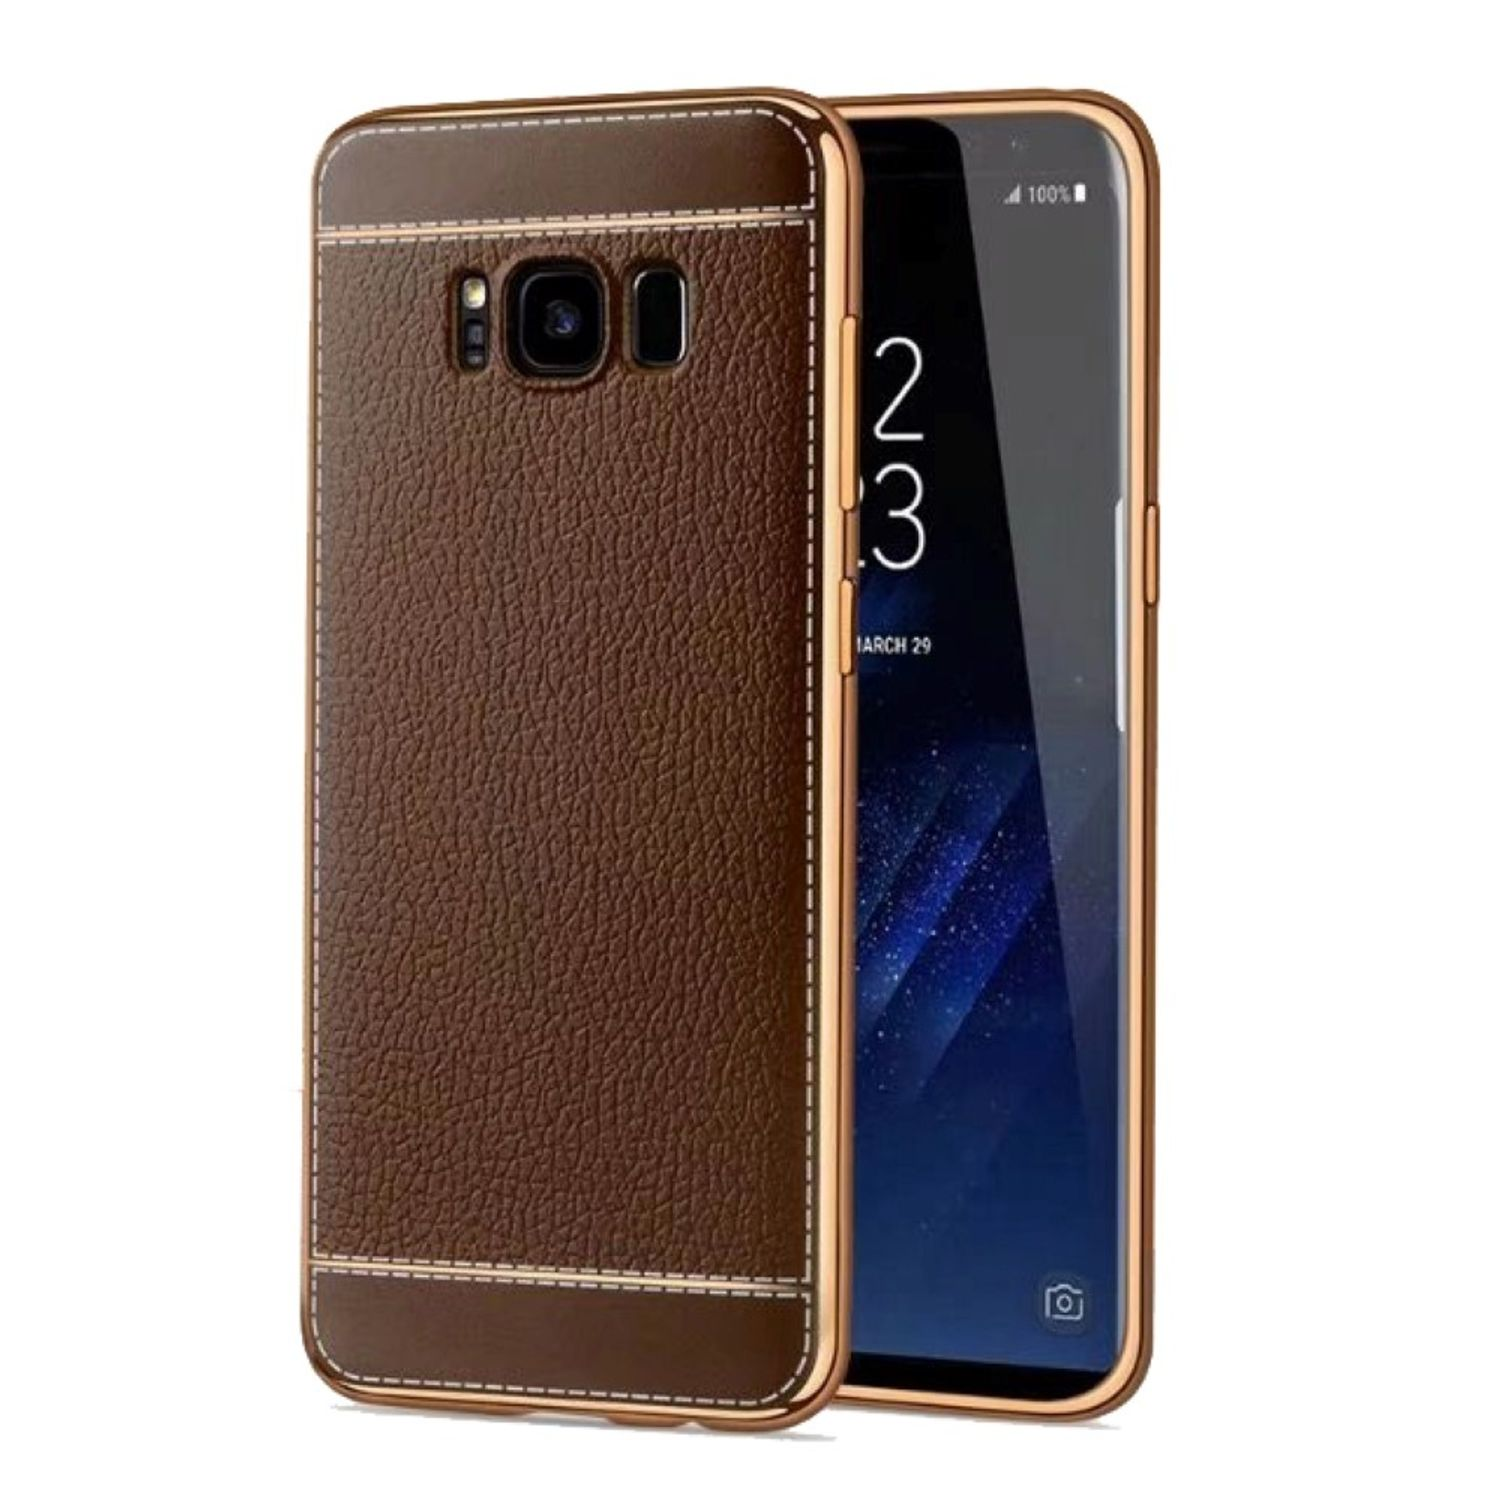 samsung galaxy s7 edge handy h lle schutz case chrom back. Black Bedroom Furniture Sets. Home Design Ideas